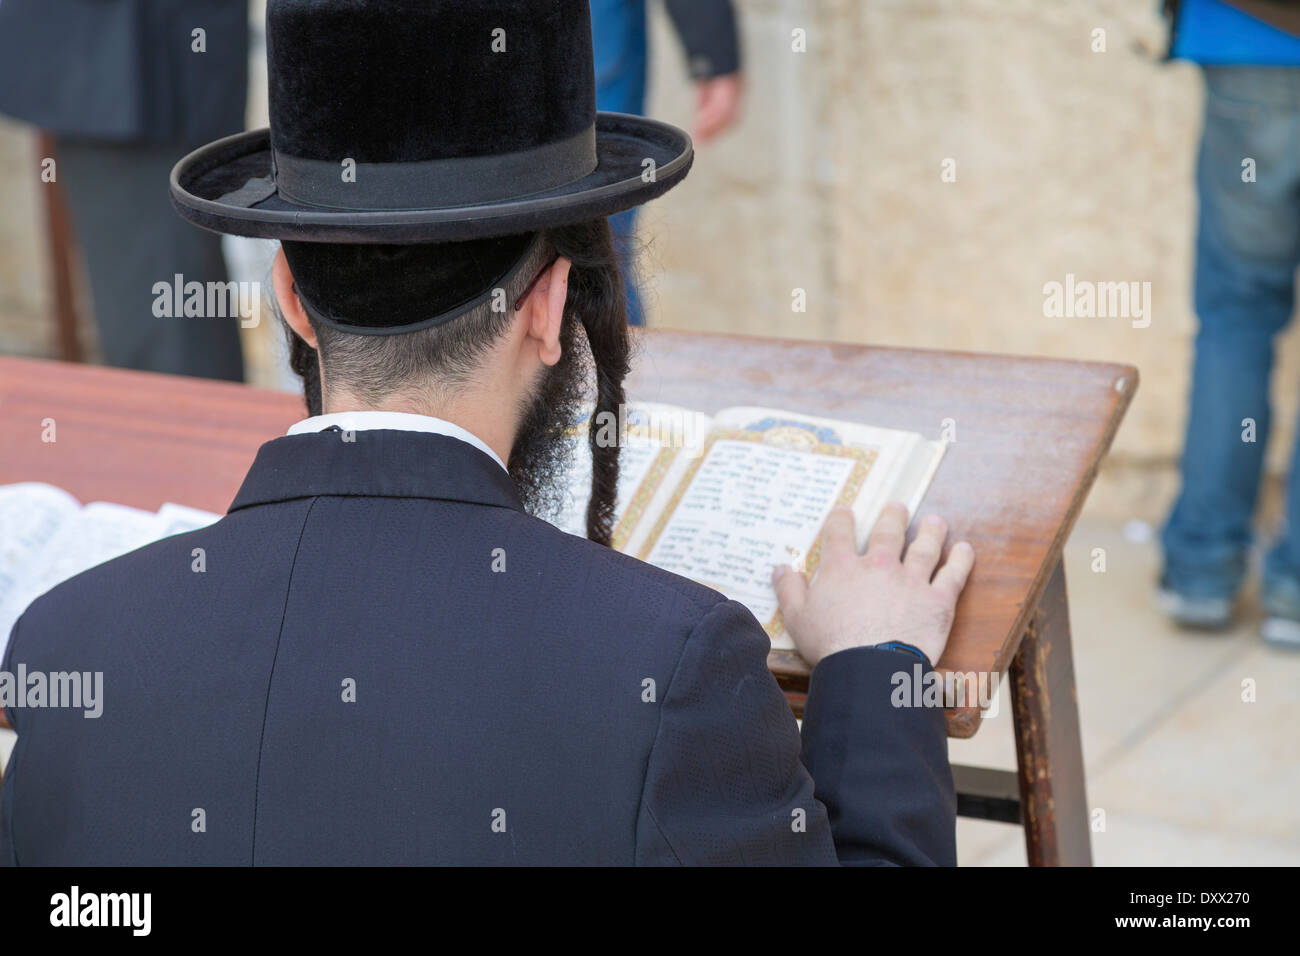 Ultra-orthodox Jew praying at the Western Wall, Wailing Wall, view over his shoulder onto the Talmud, Jerusalem, Israel - Stock Image